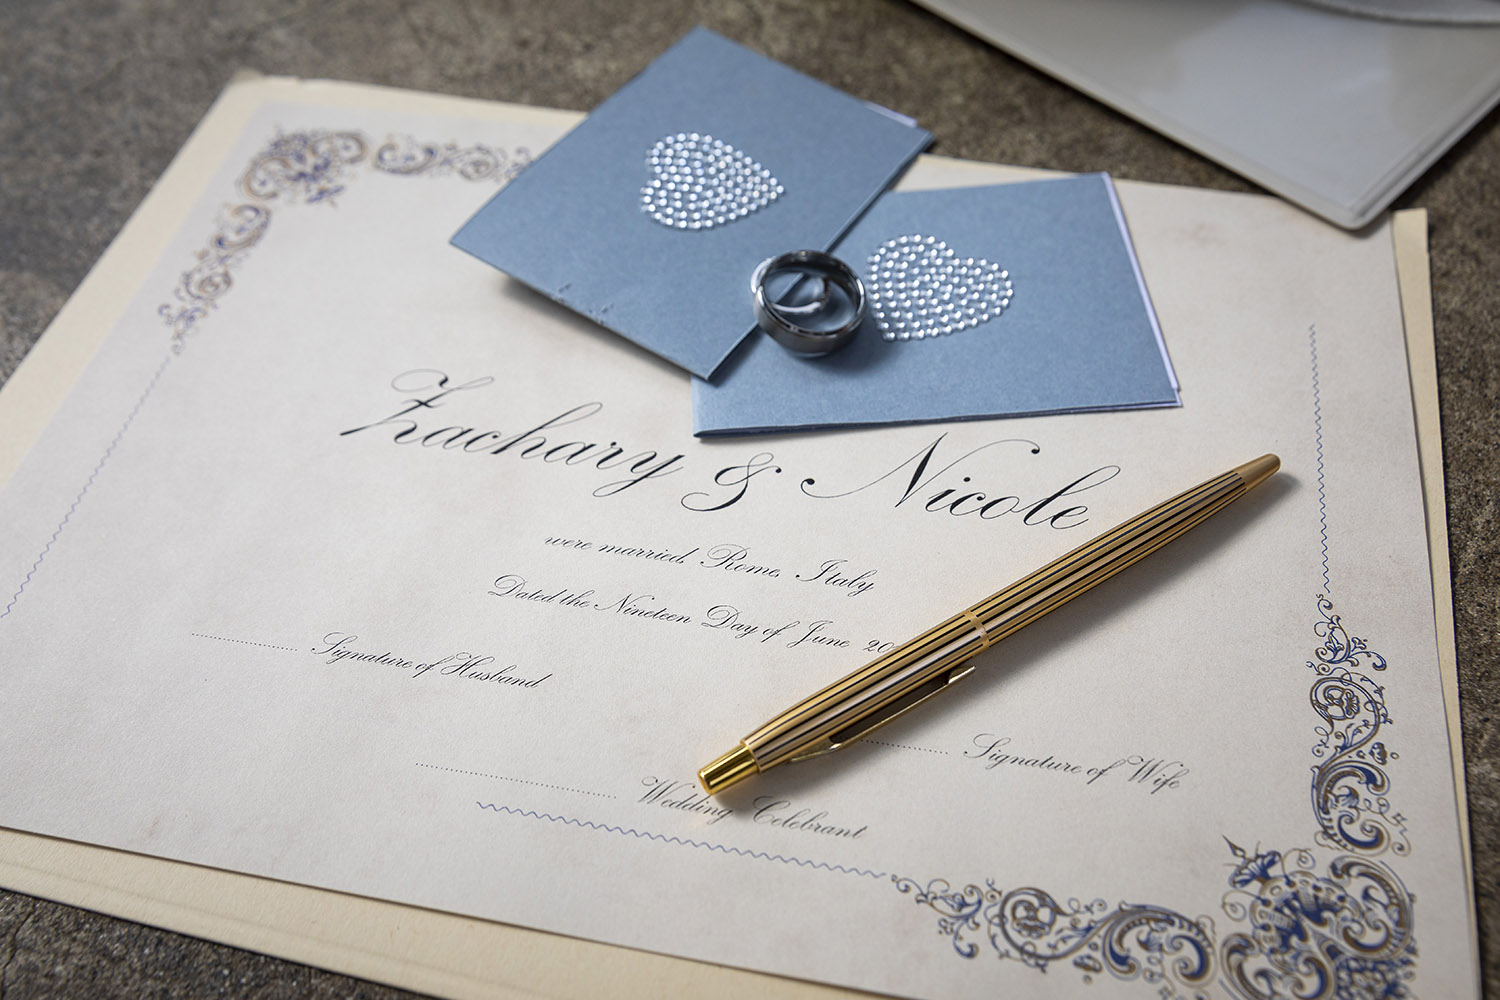 Wedding certificate in parchment paper